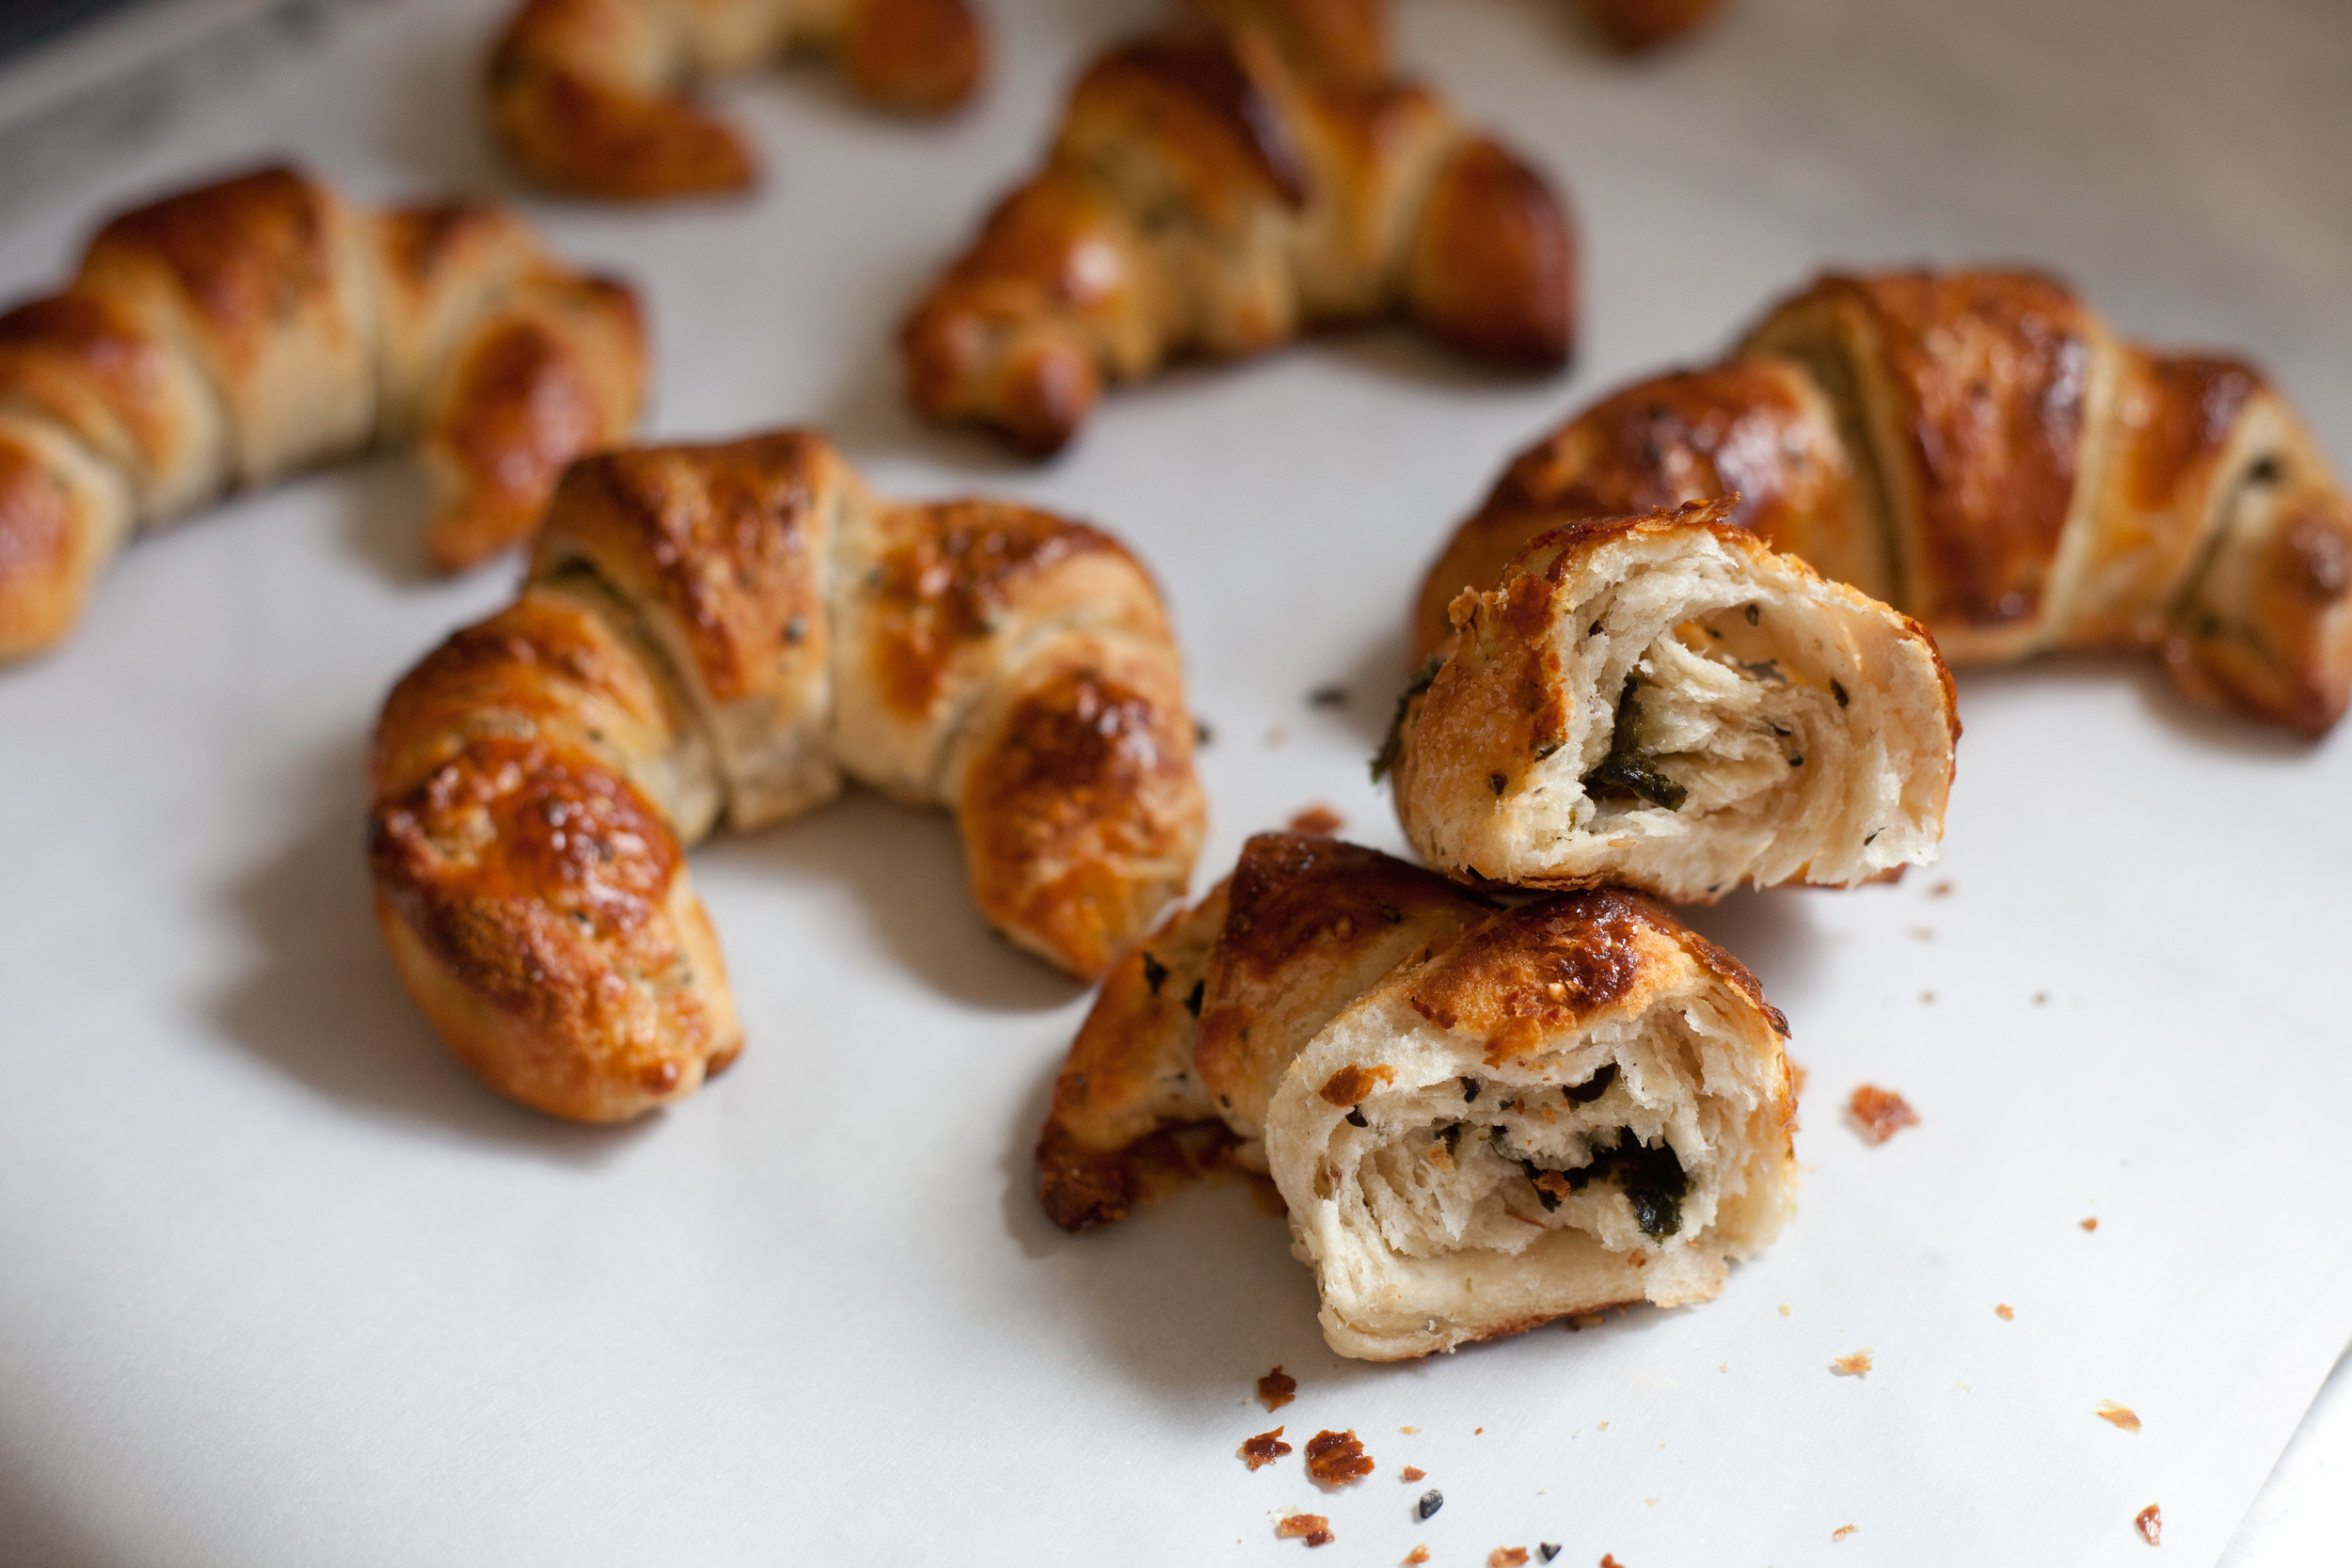 Japanese Croissants with Nori and Sesame Seeds